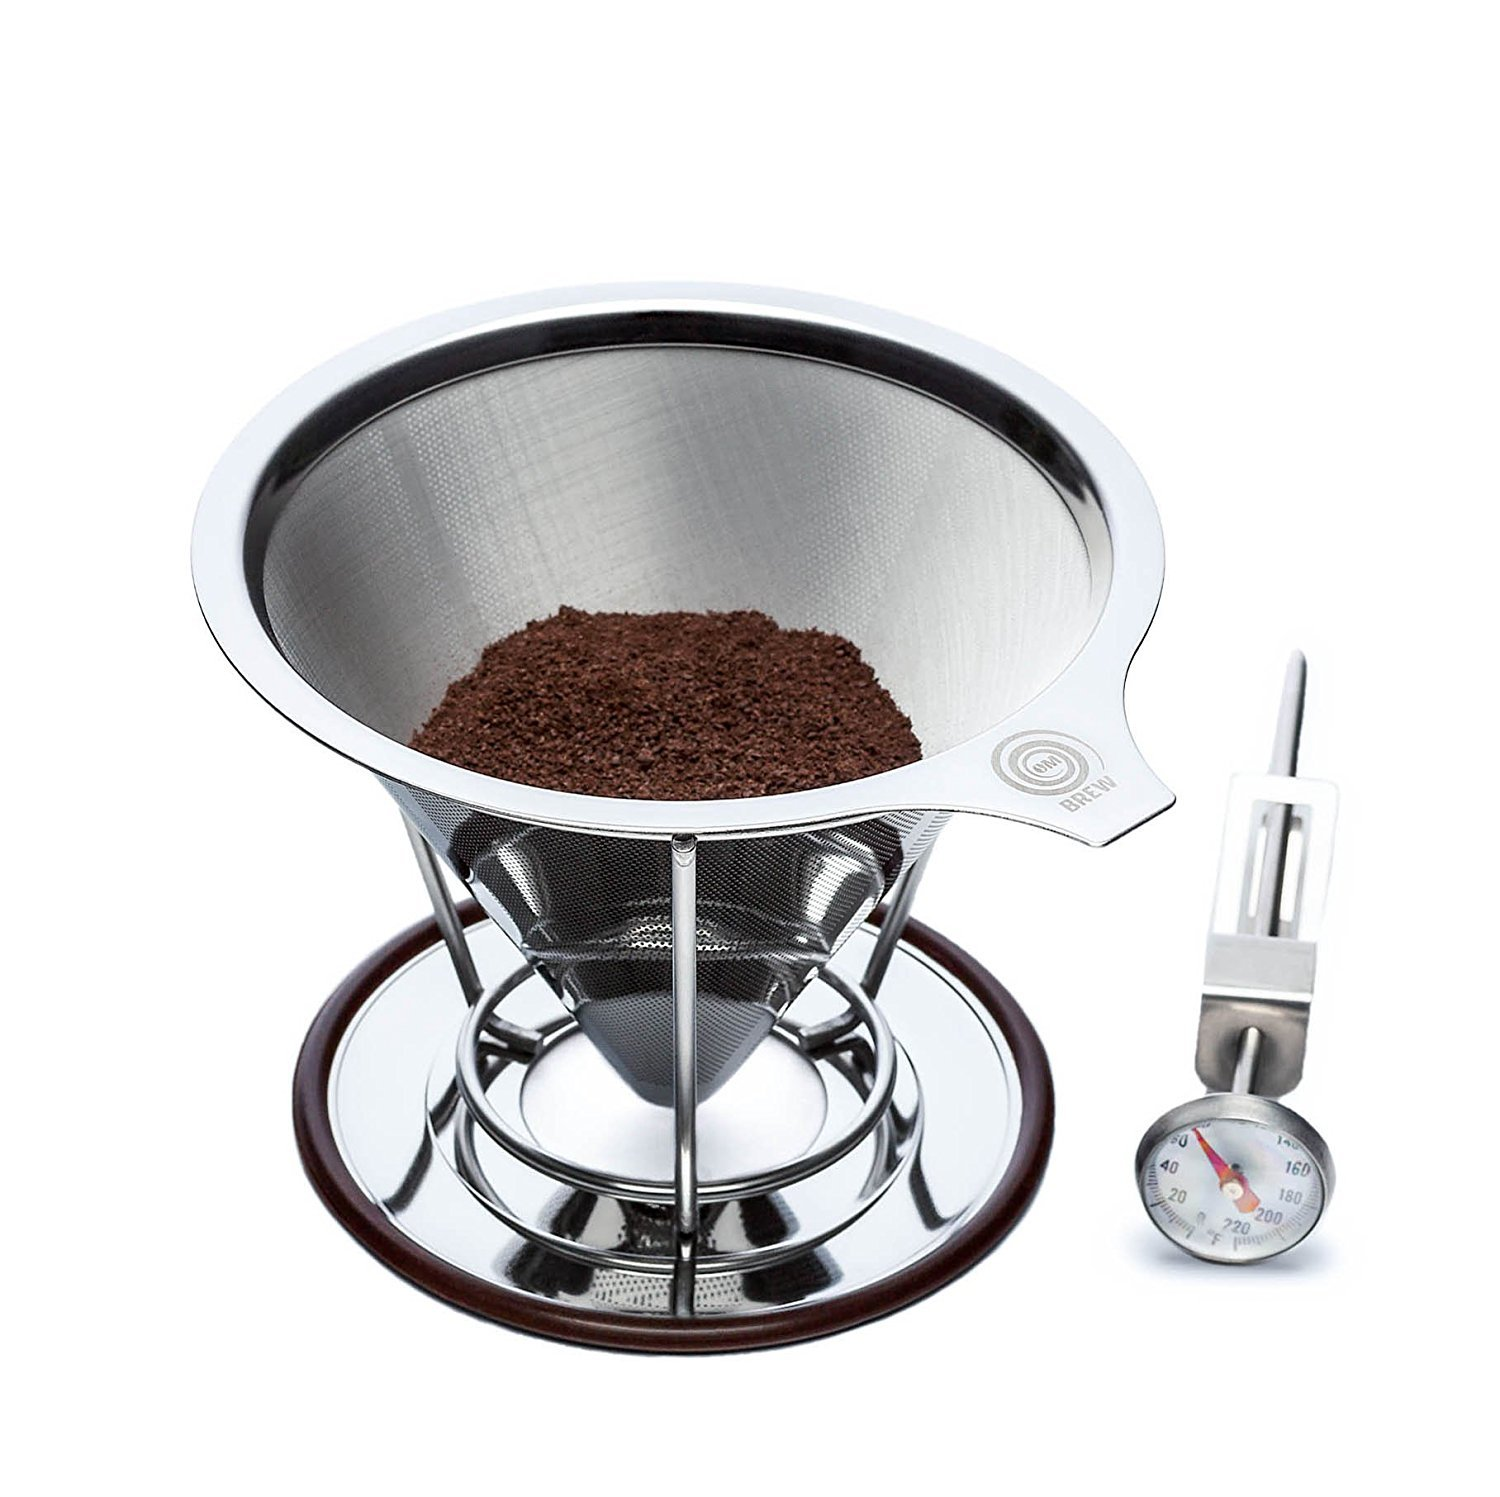 OmBrew Eco-Friendly Pour Over Stainless Steel Reusable Coffee Dripper with Separating Stand -Bundle with Dial Thermometer- Dishwasher Safe and Serves 1-4 Cups by OmBrew